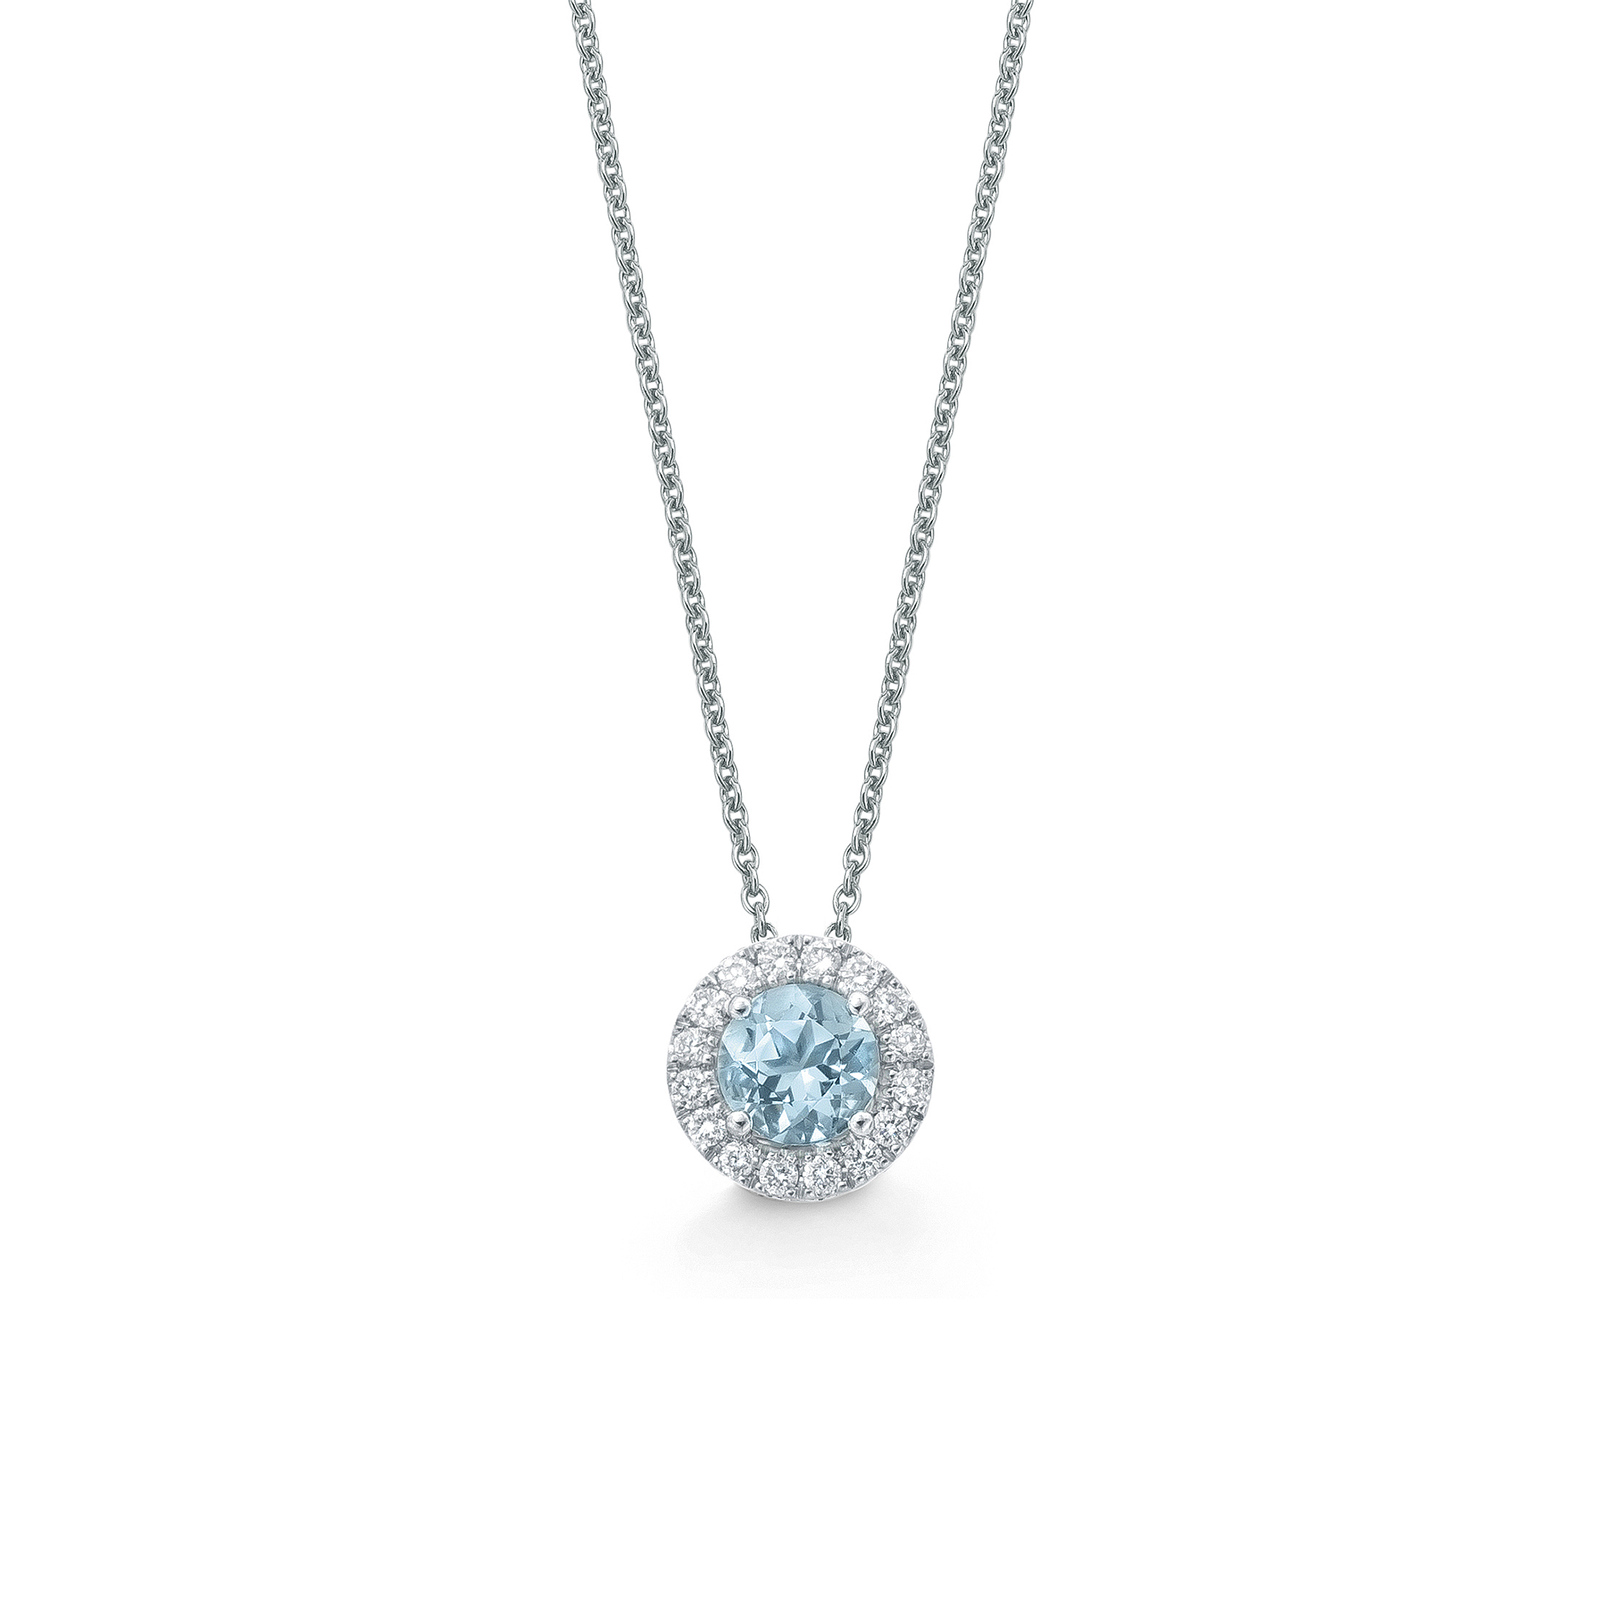 Carrington 18ct White Gold 6mm Aquamarine and 0.20cttw Diamond Pendant